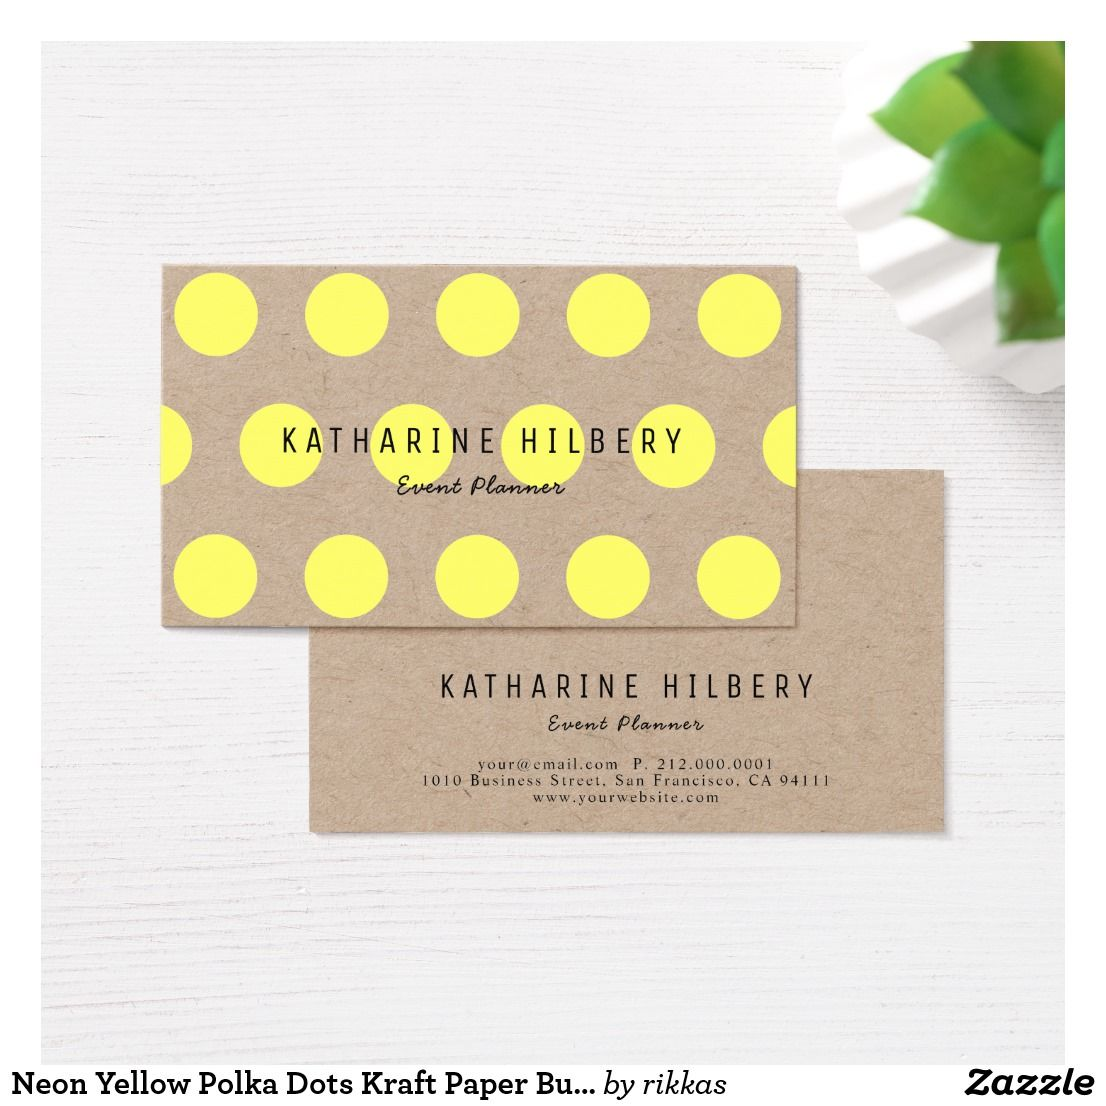 Neon Yellow Polka Dots Kraft Paper Business Card Zazzle Com Business Card Design Kraft Paper Yellow Polka Dot